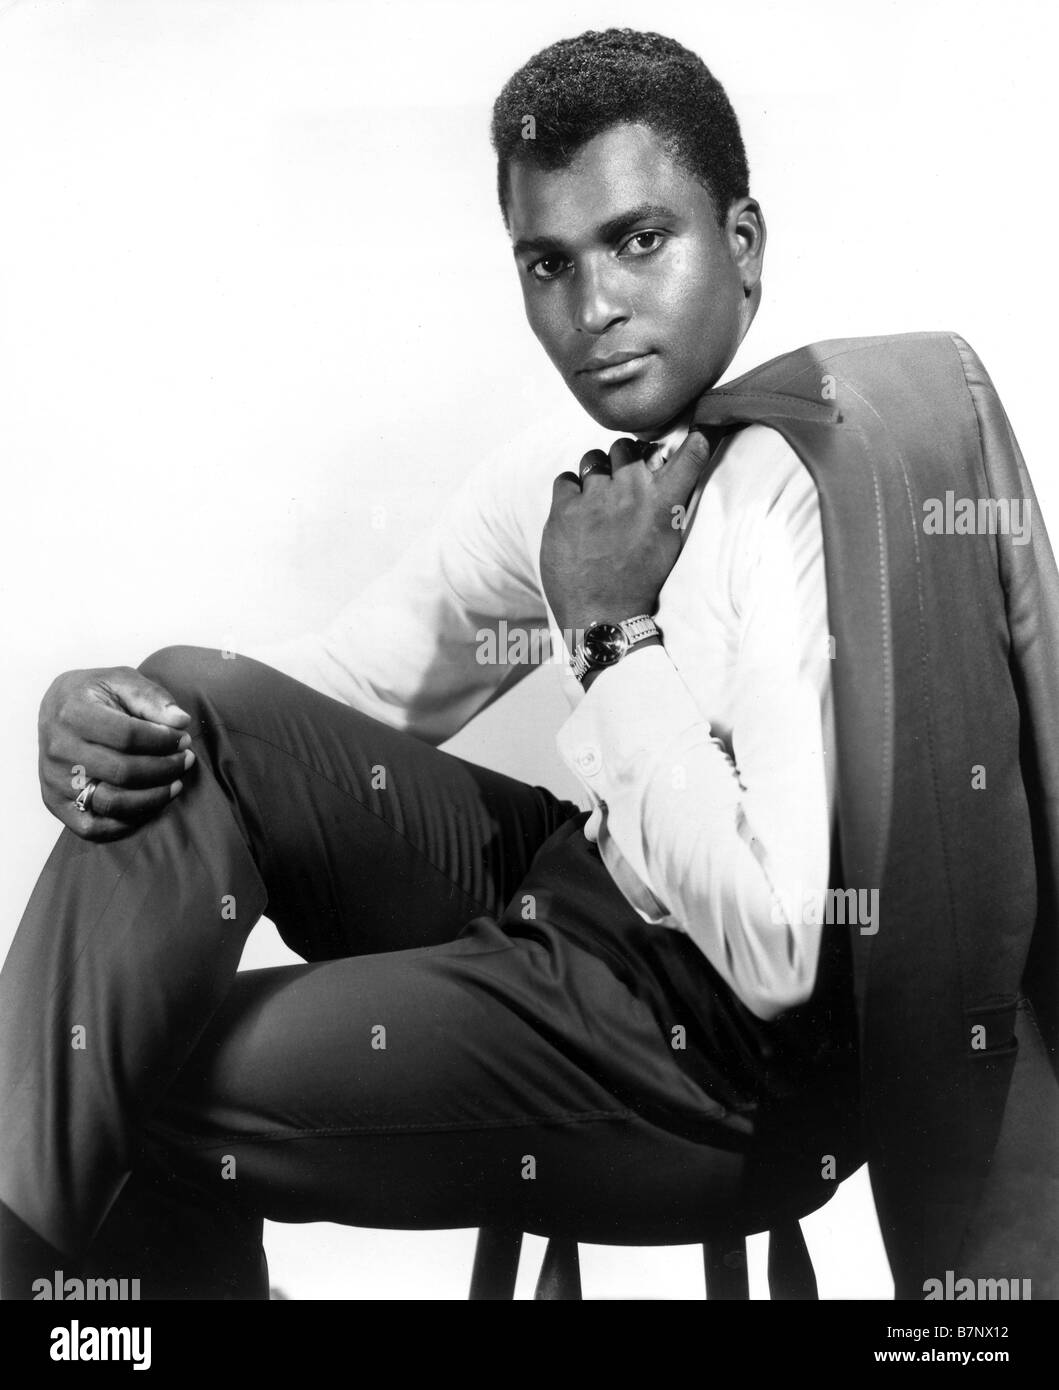 CHARLEY PRIDE US Country Western singer Photo Stock